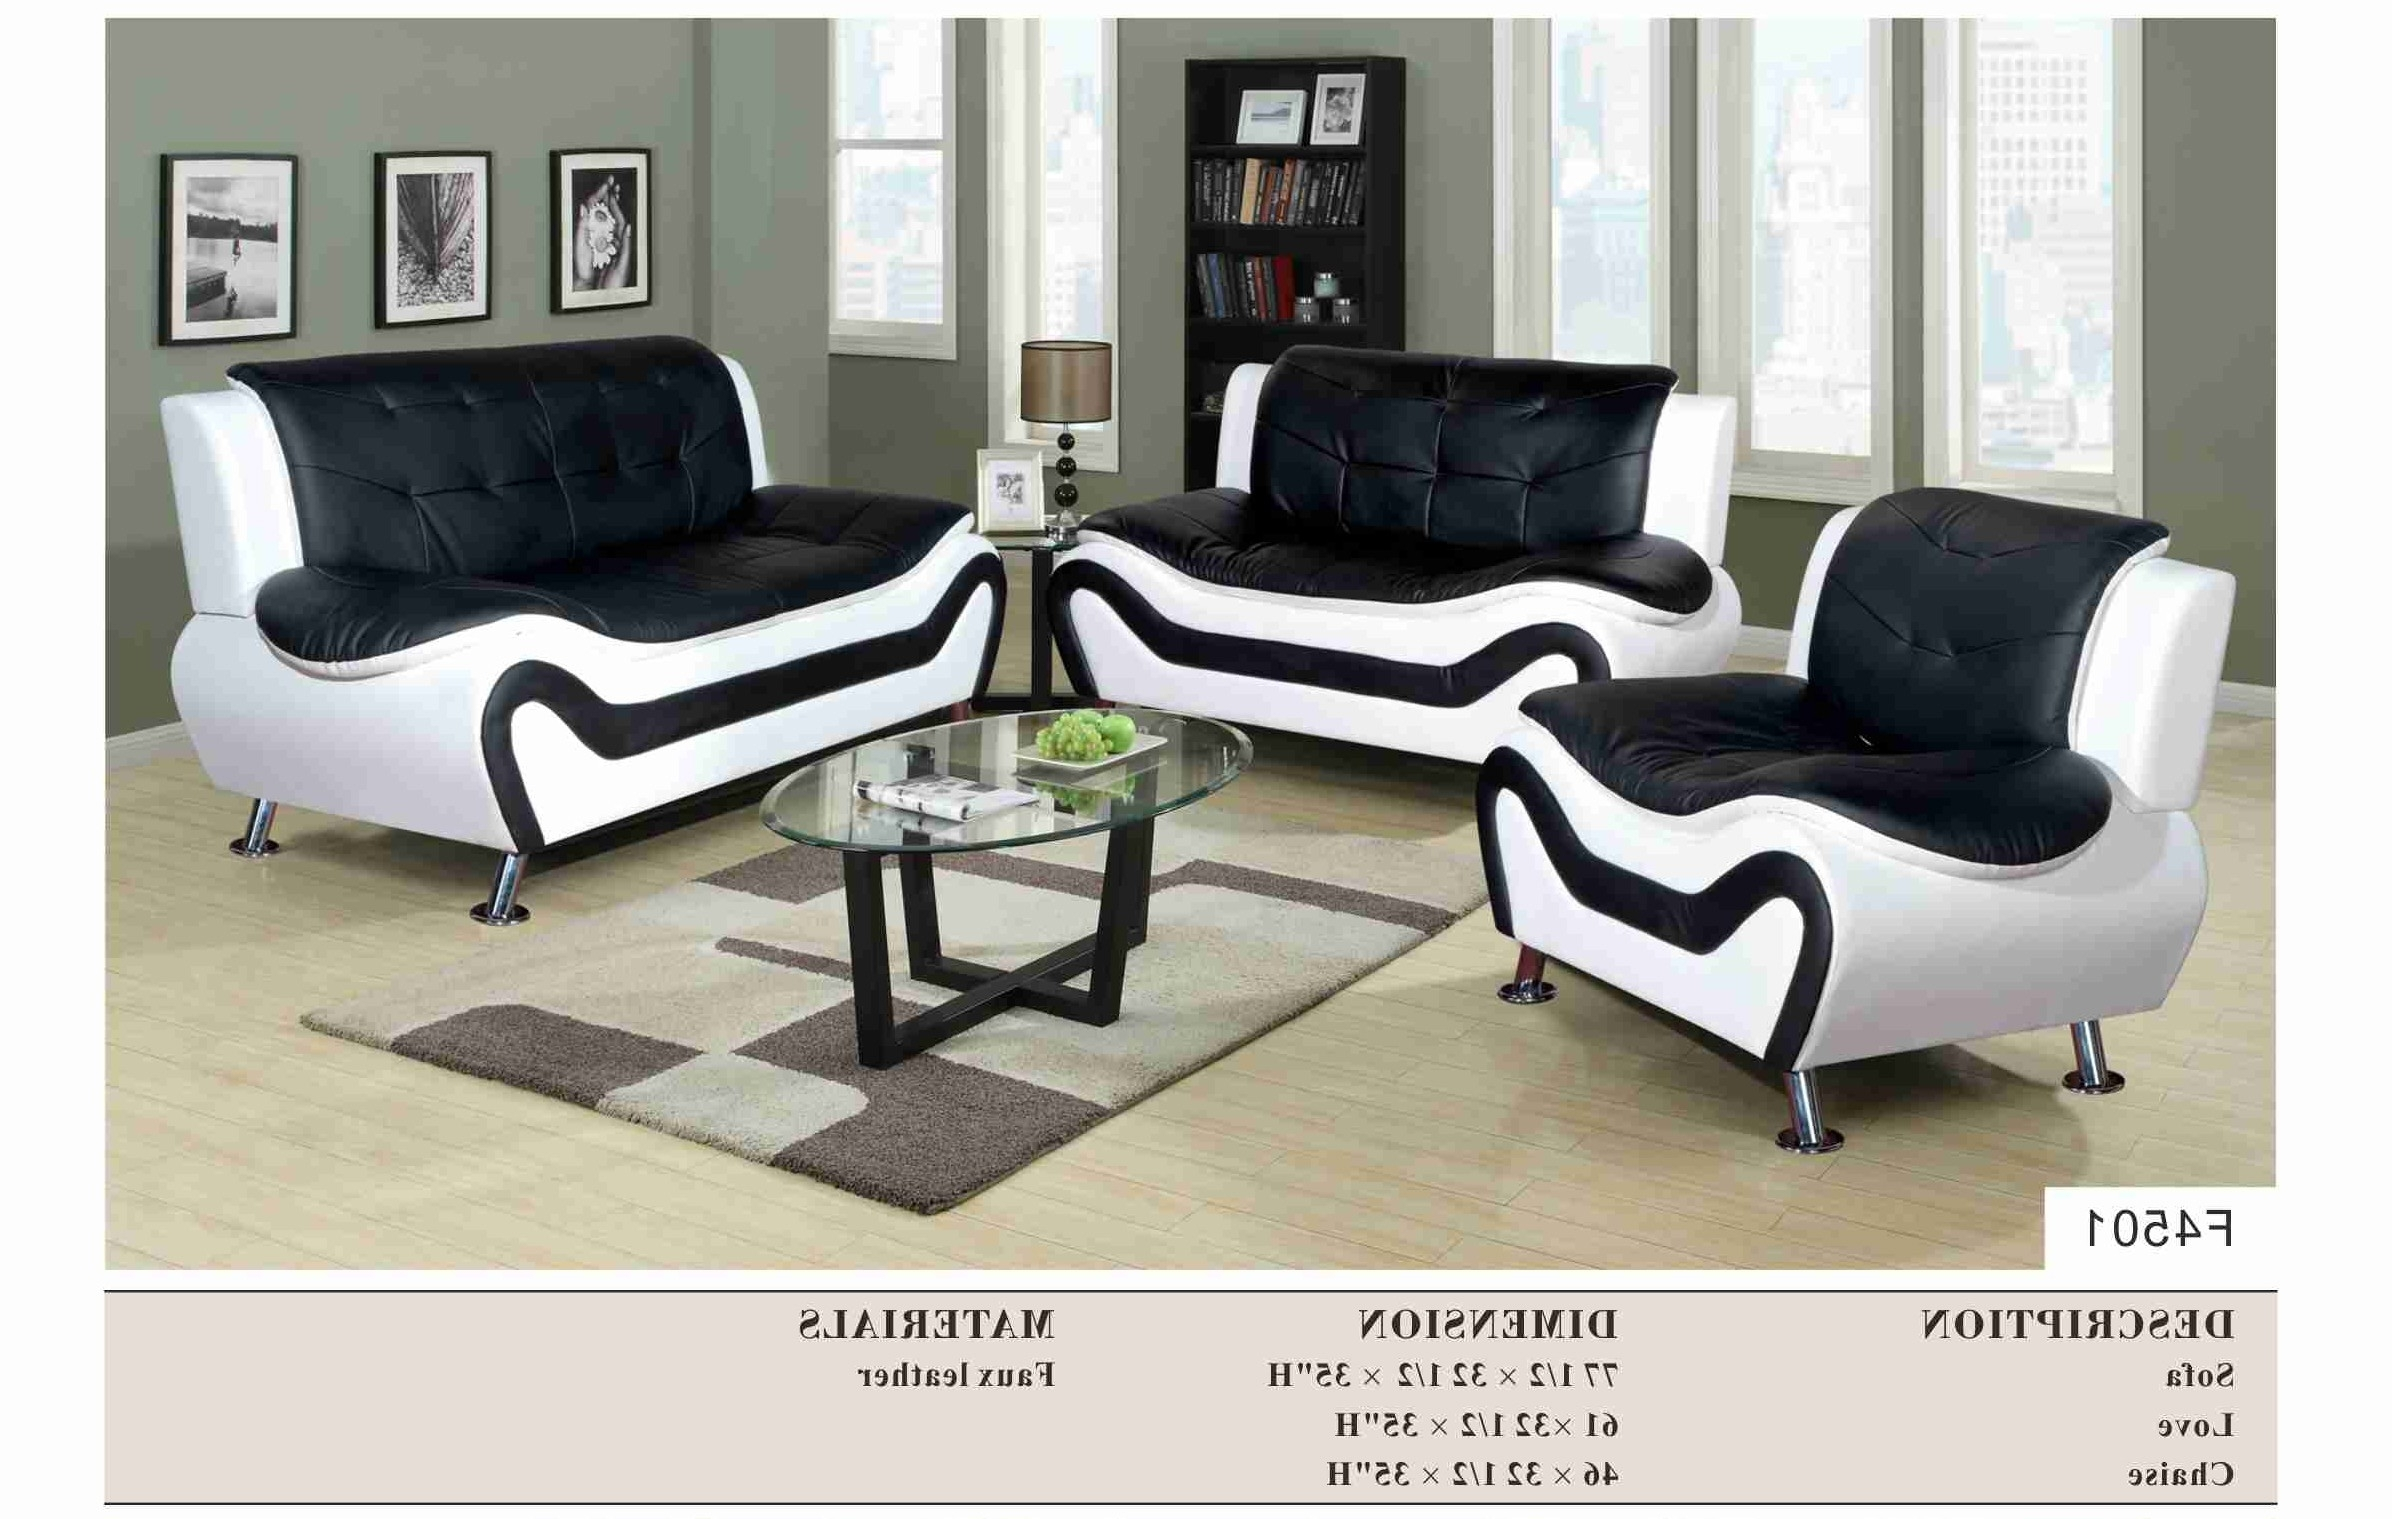 Widely Used Black And White Sofas Inside Black And White Sofas For Decor 15 – Visionexchange (View 14 of 20)